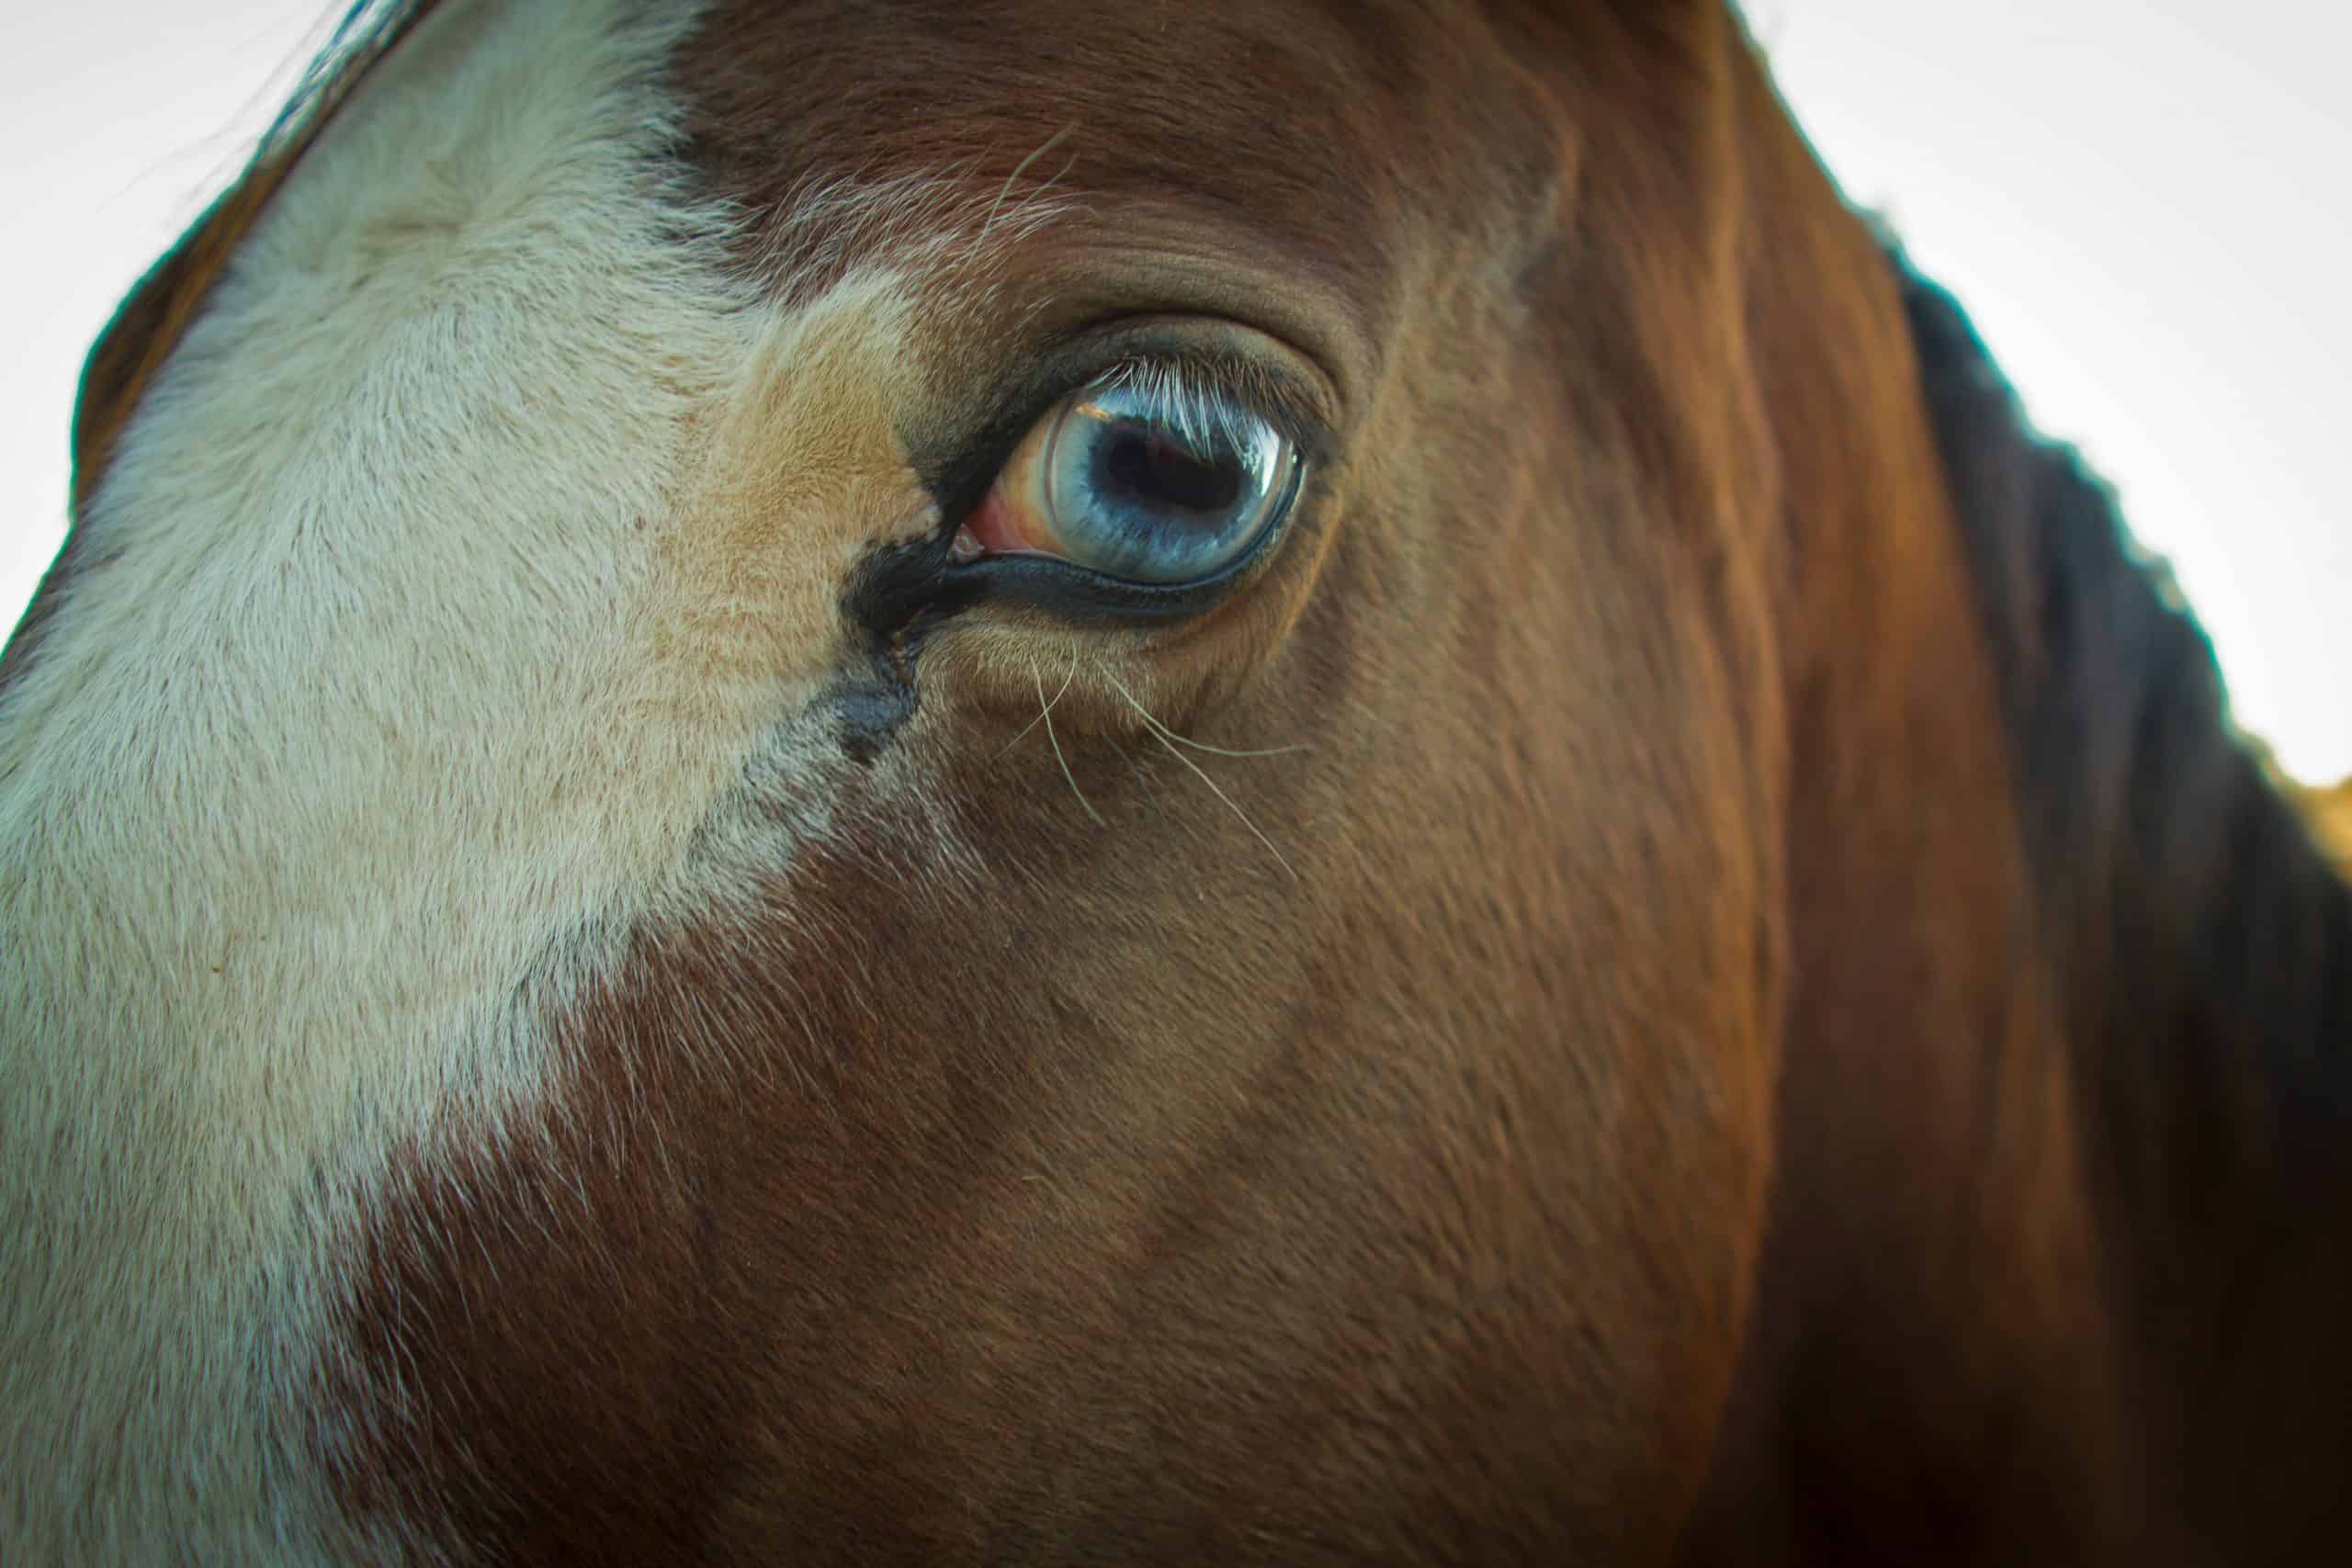 A Horse with an eery blue eye looking at the camera.